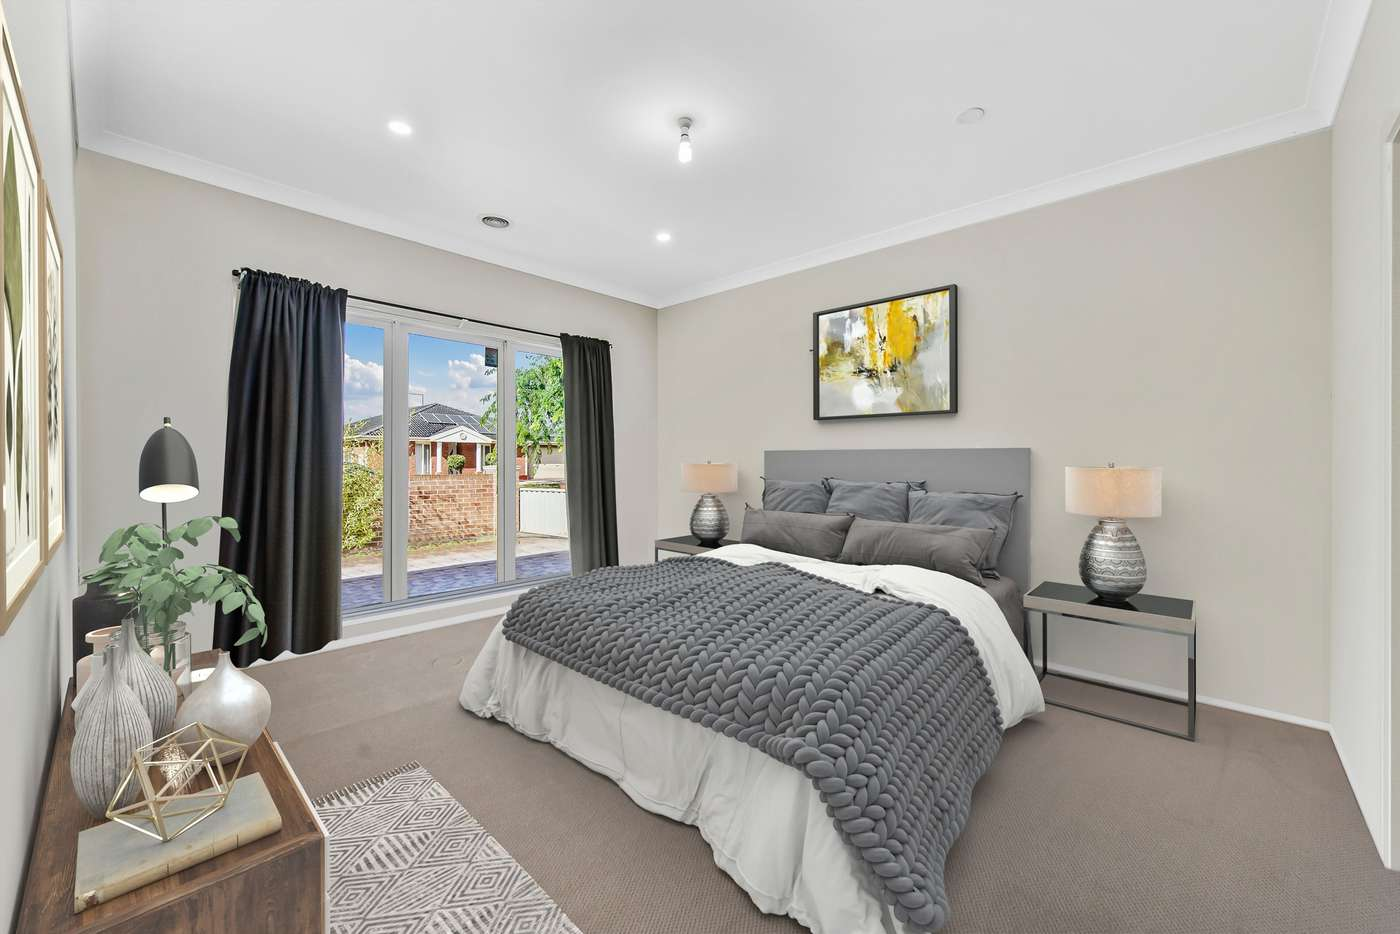 Sixth view of Homely house listing, 68 Jindabyne Avenue, Taylors Hill VIC 3037